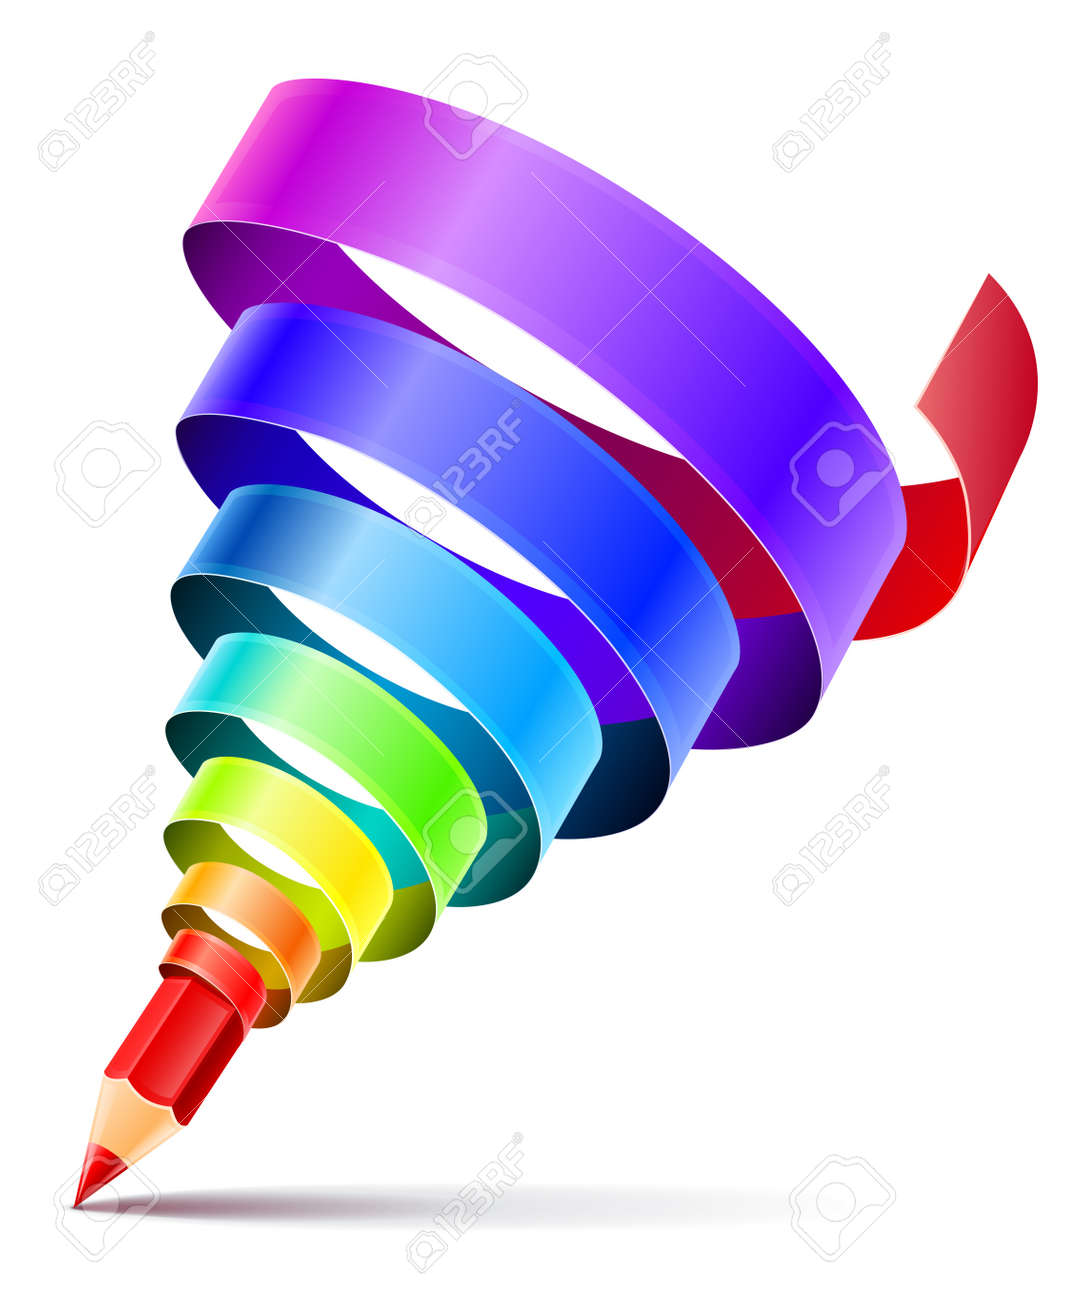 creative art pencil design concept with spiral of color rainbow ribbon isolated on white background. Transparent objects used for shadow drawing Stock Vector - 18534341